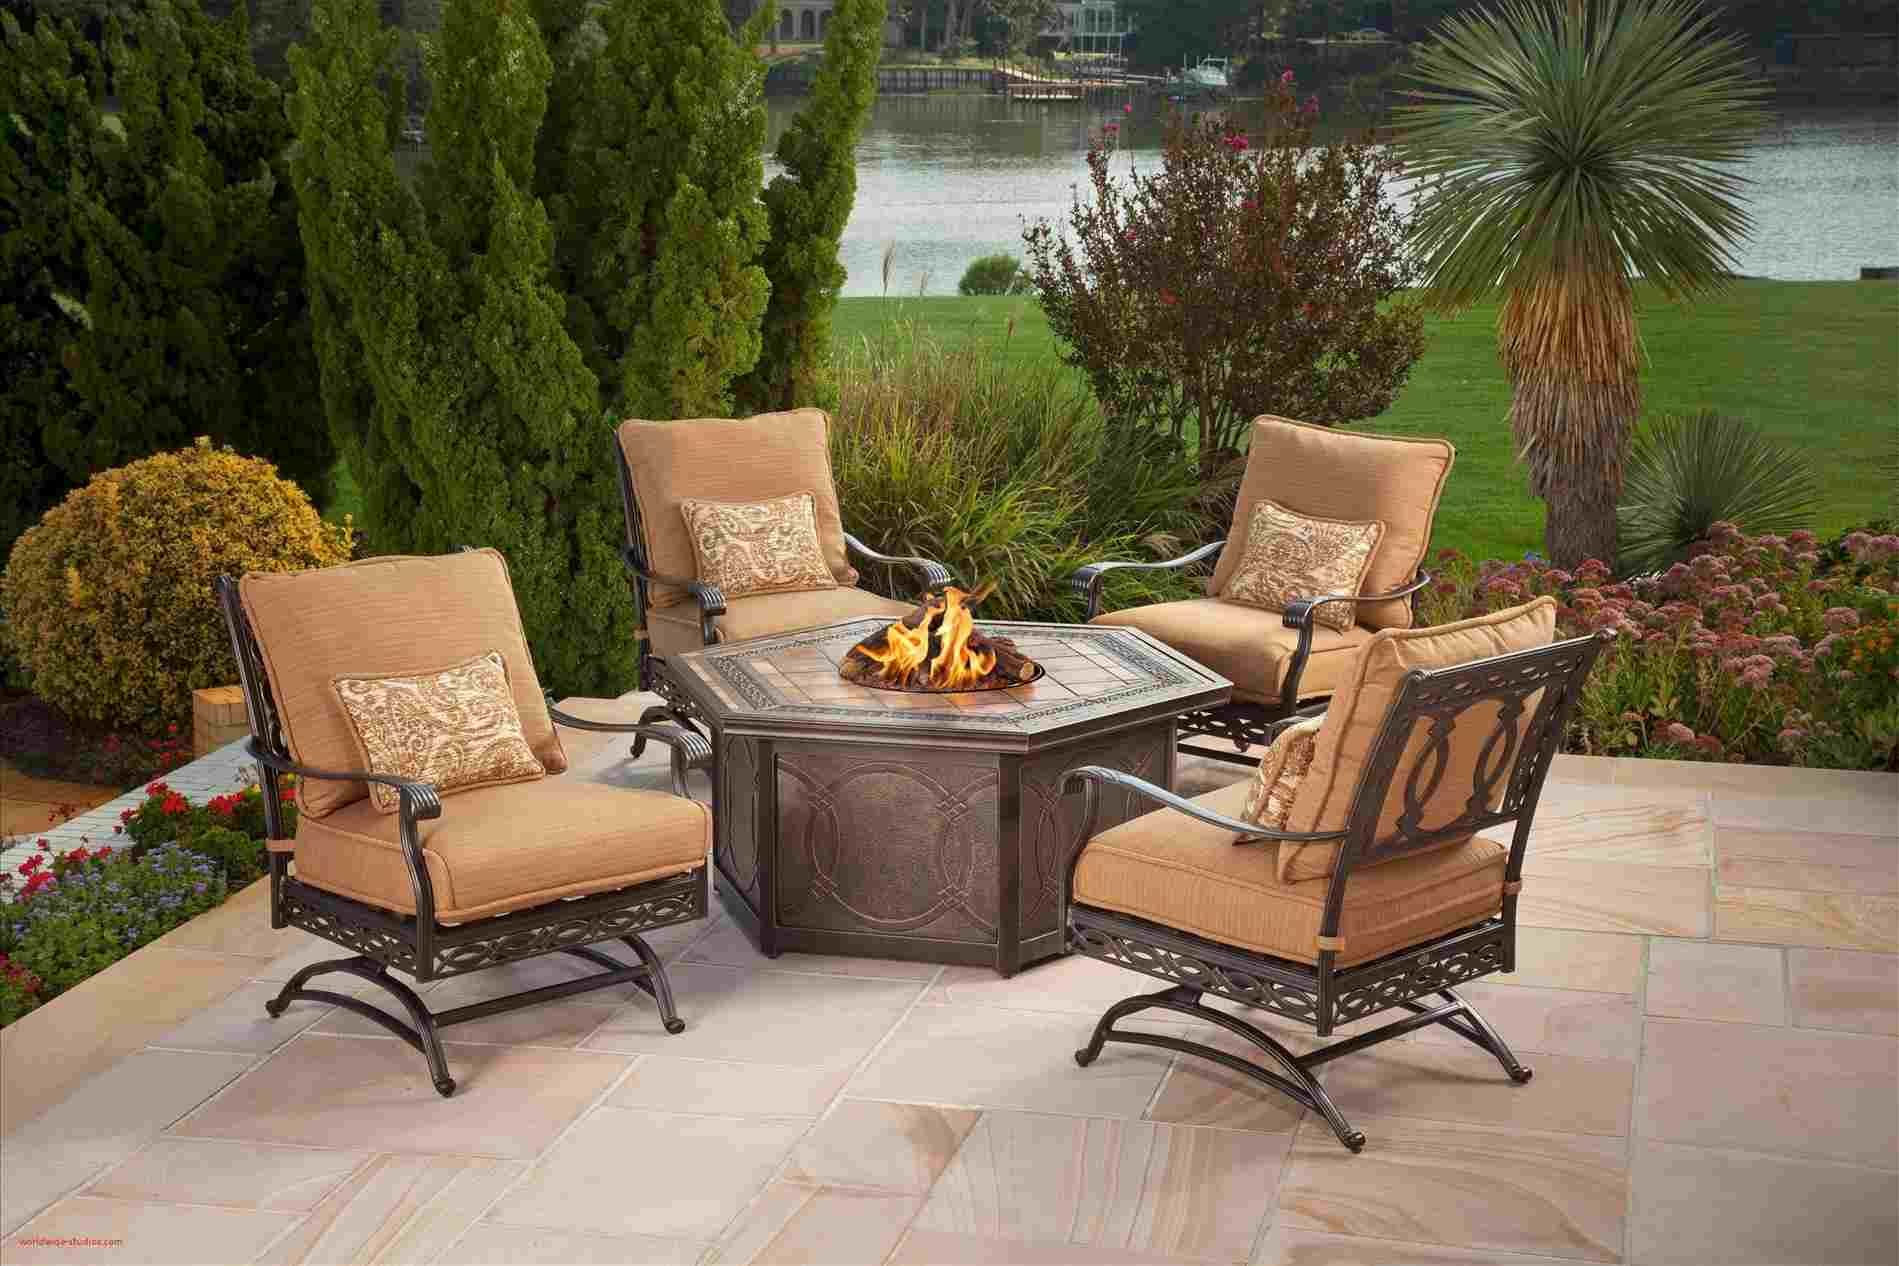 Lowes Fire Pit On Sale Lowes Patio Furniture Cheap Patio Furniture Small Patio Furniture Outdoor table and chairs for sale